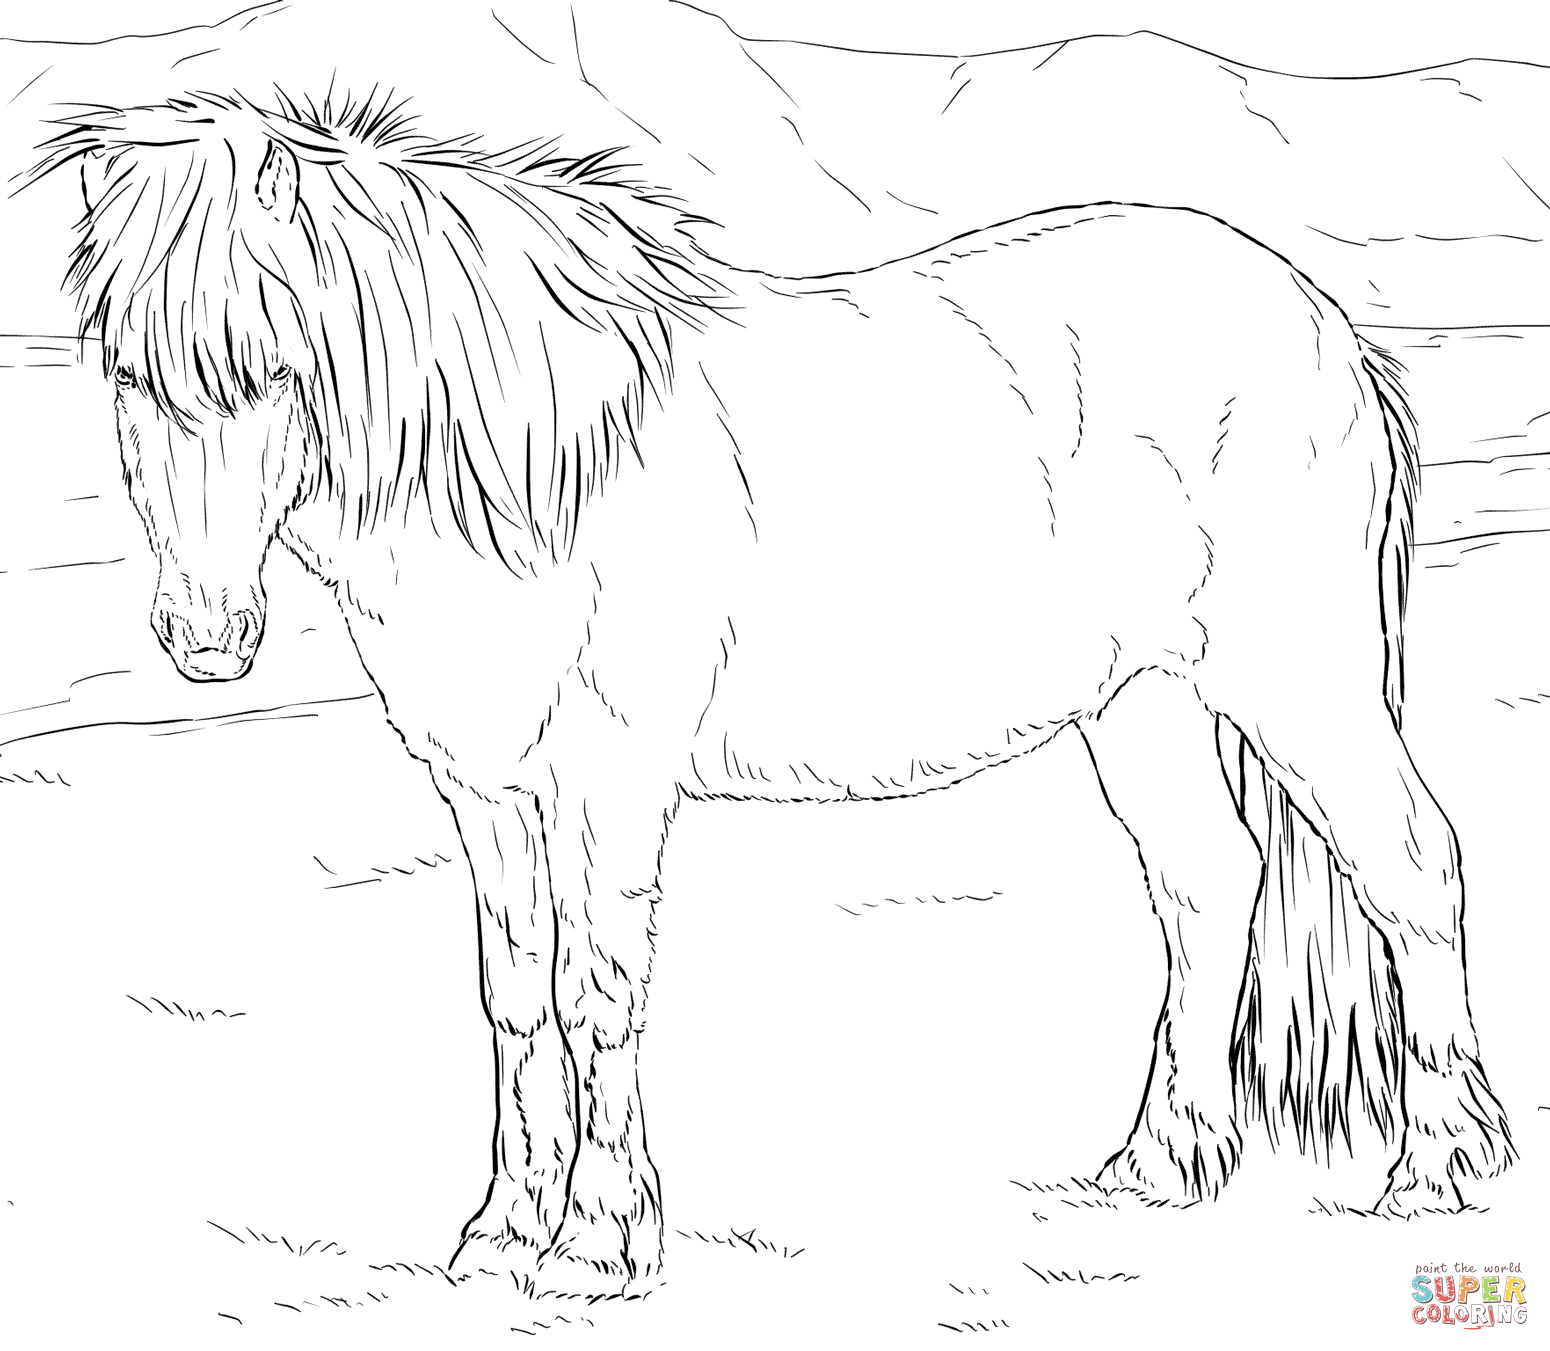 miniature horse coloring pages gypsy horse coloring pages free printable coloring sheets pages miniature coloring horse